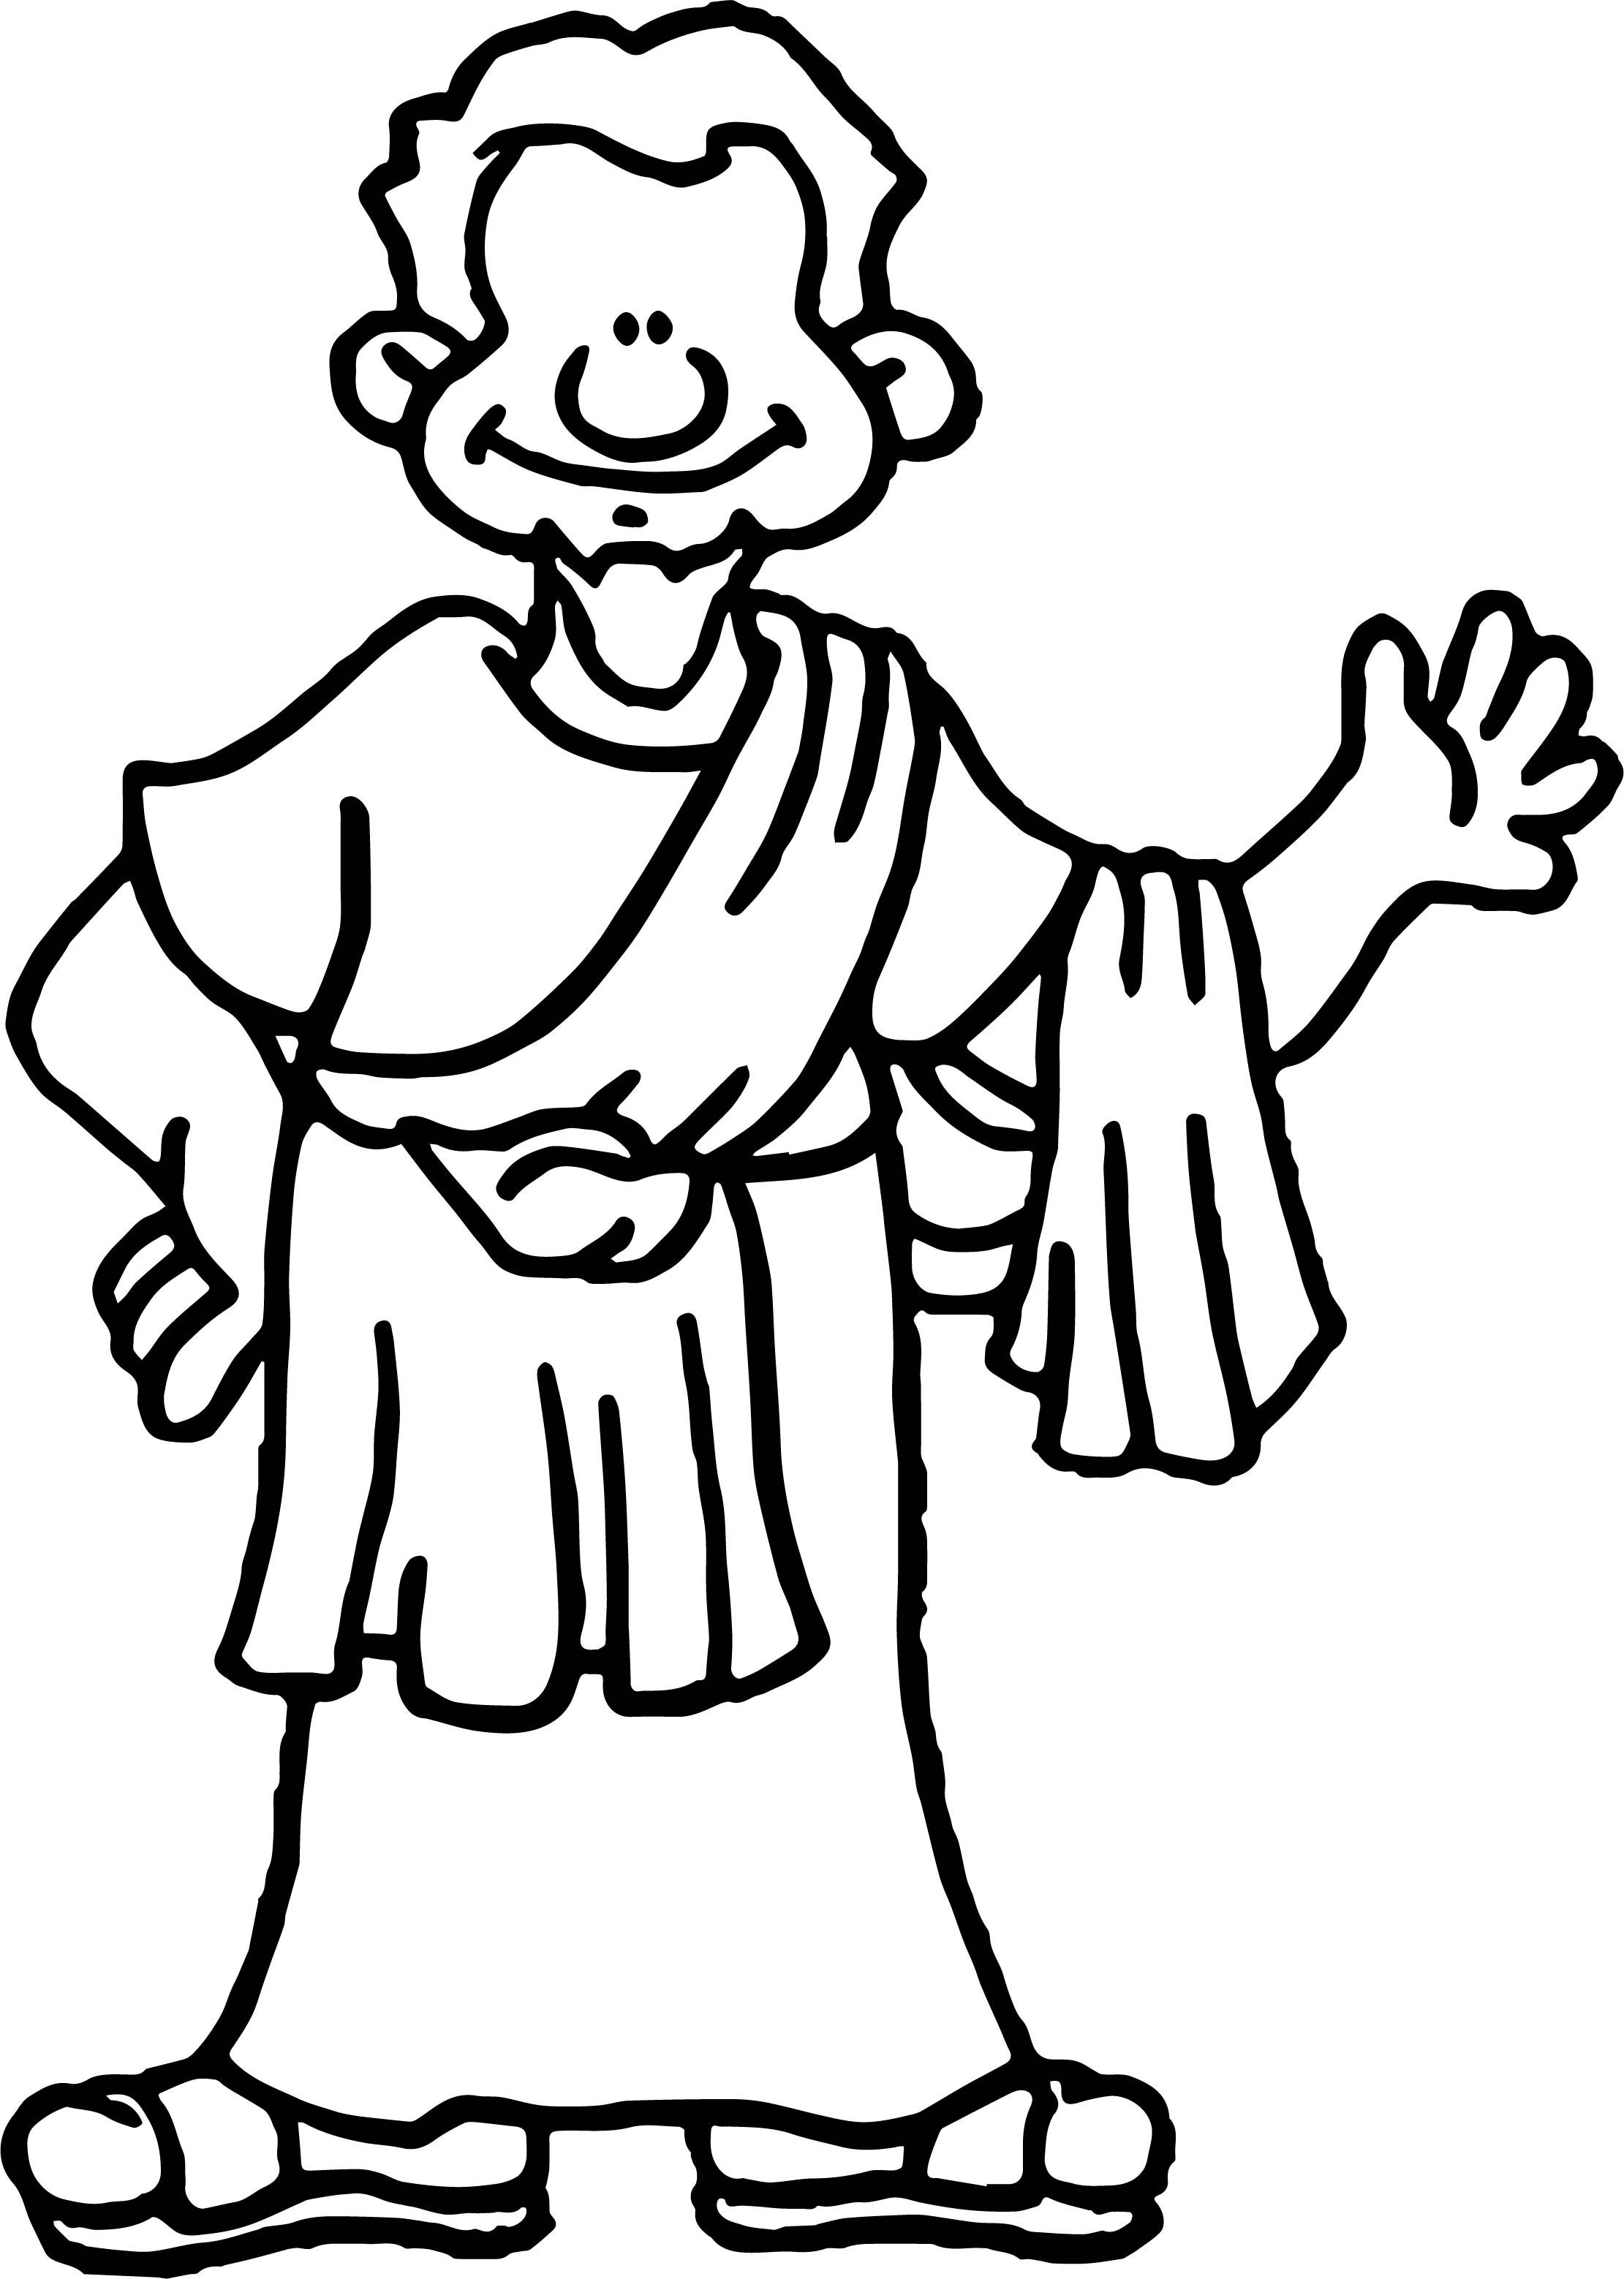 paul the apostle coloring pages - photo#11